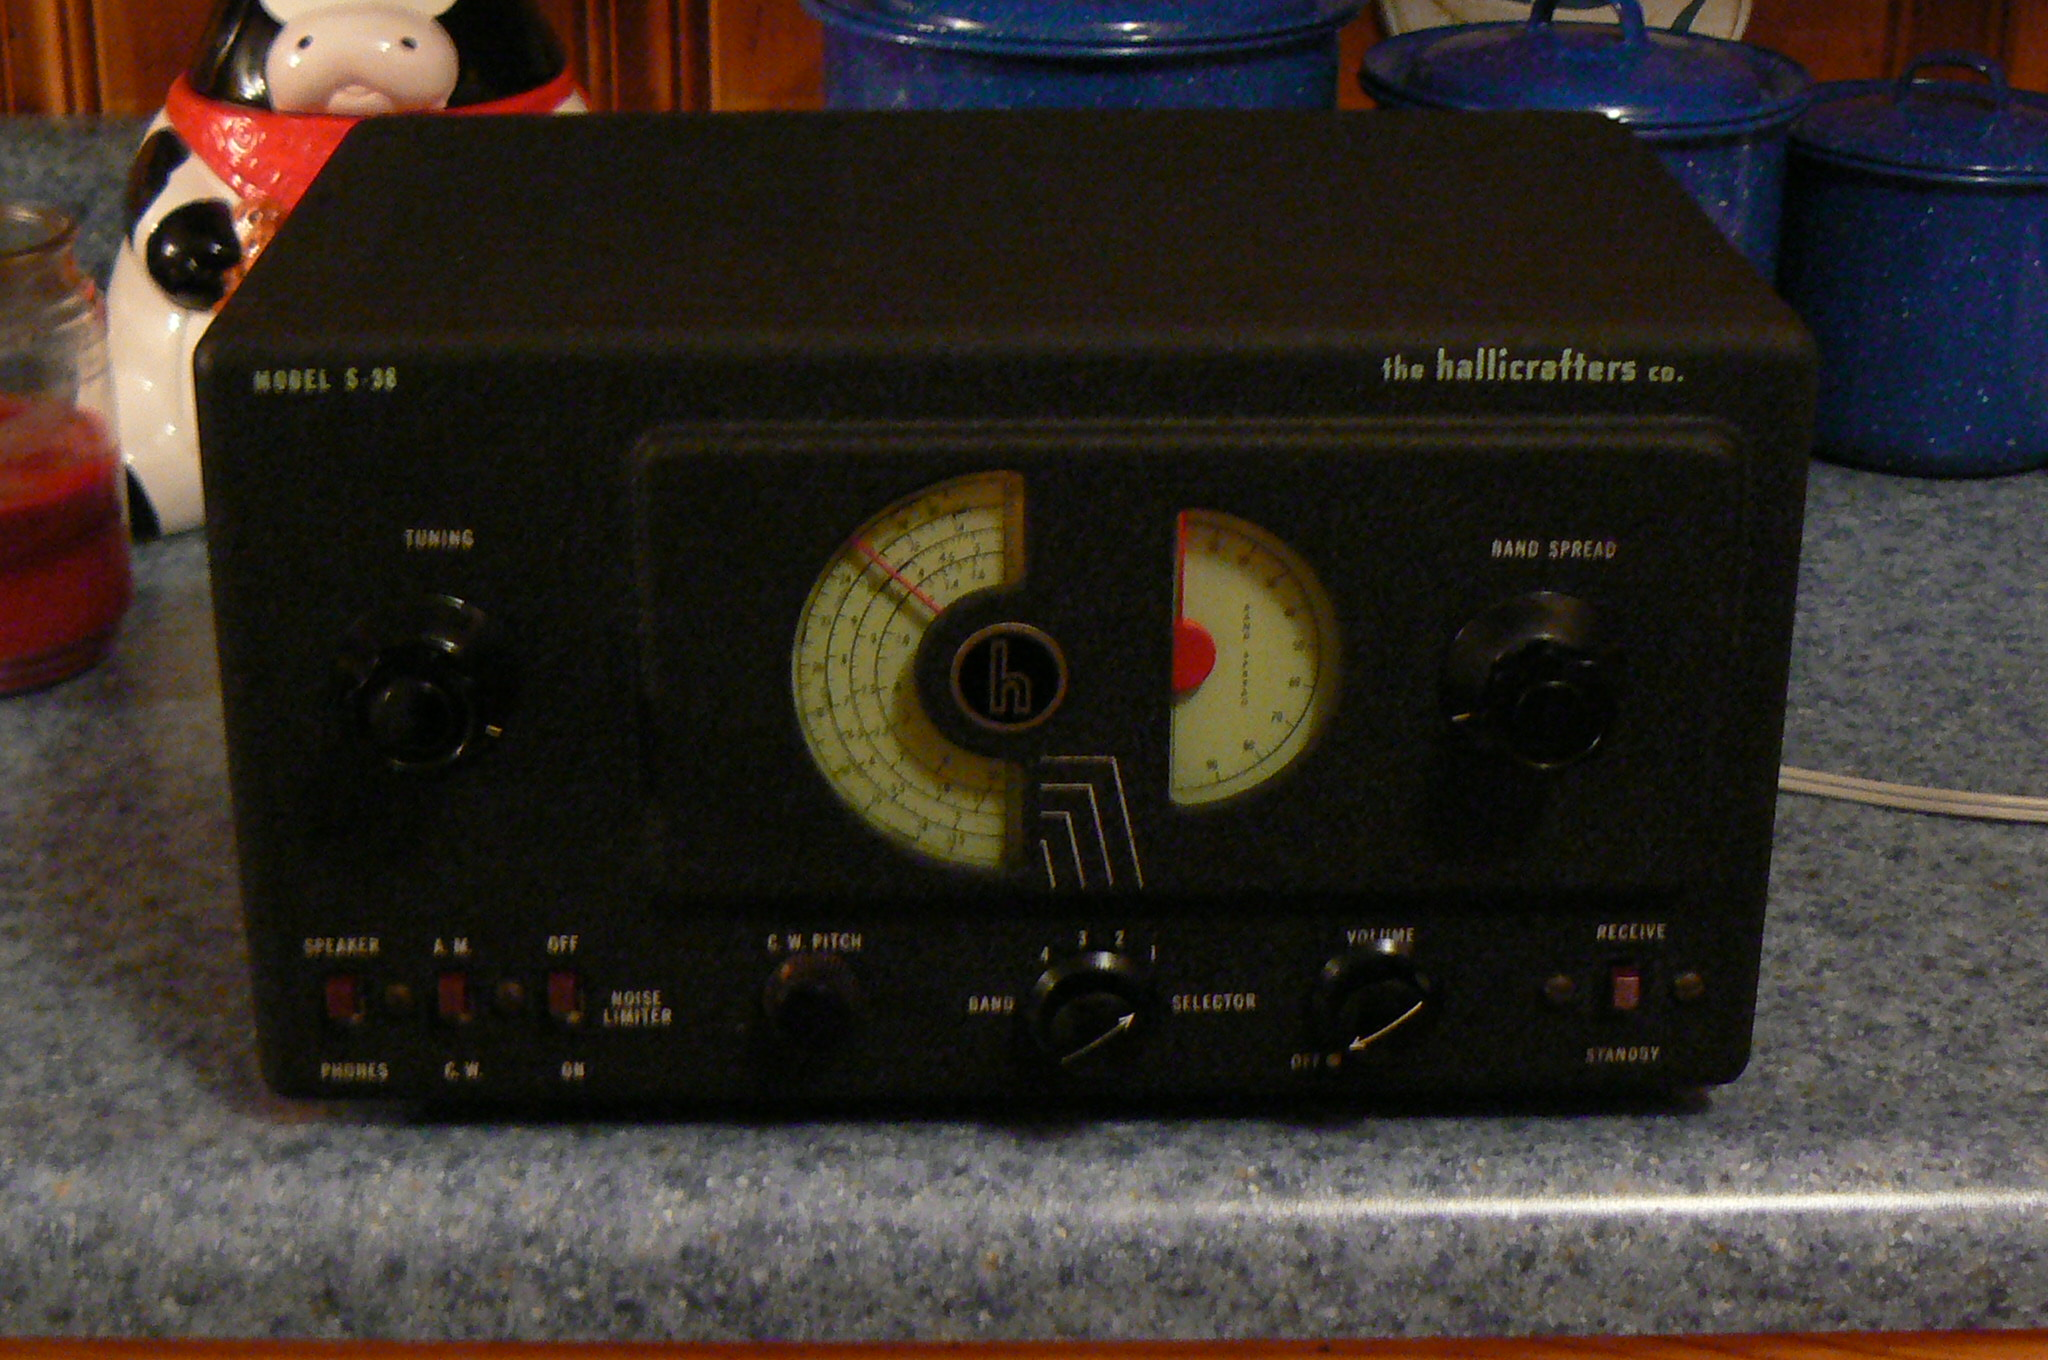 Boatanchor shortwave furthermore 3517 Kenwood Ts 950s in addition Remembering Vacuum Tube Radio Gear additionally S 38c moreover Qsl Ham History12. on hallicrafters s 38 shortwave receiver